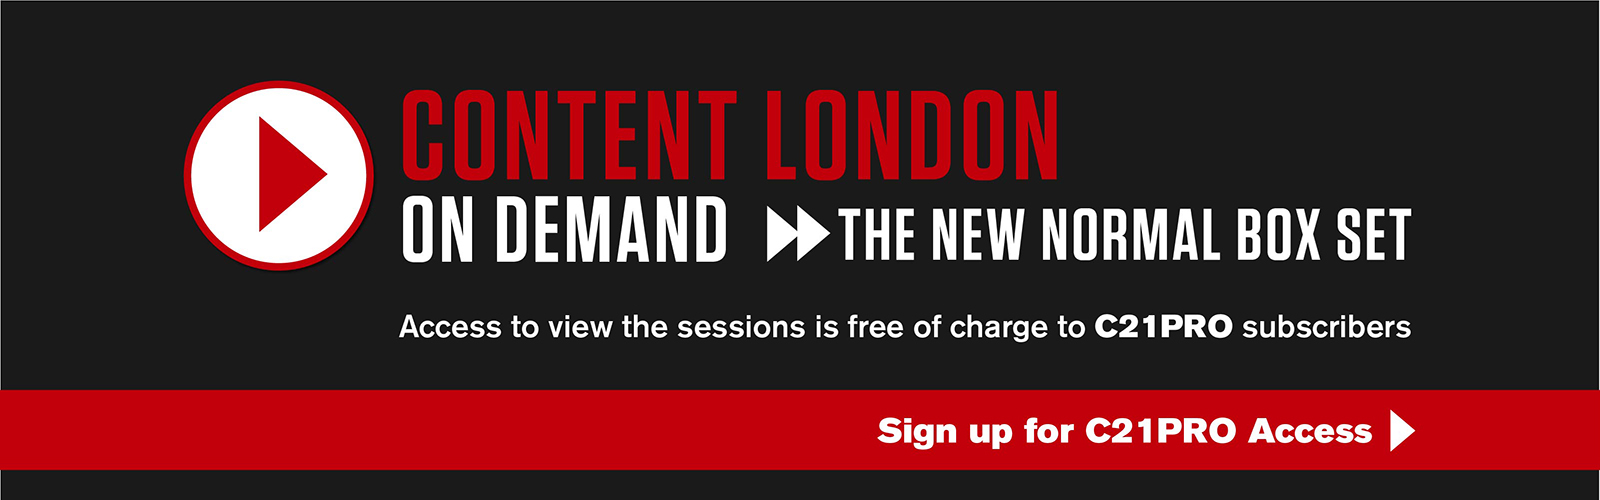 Content London On Demand